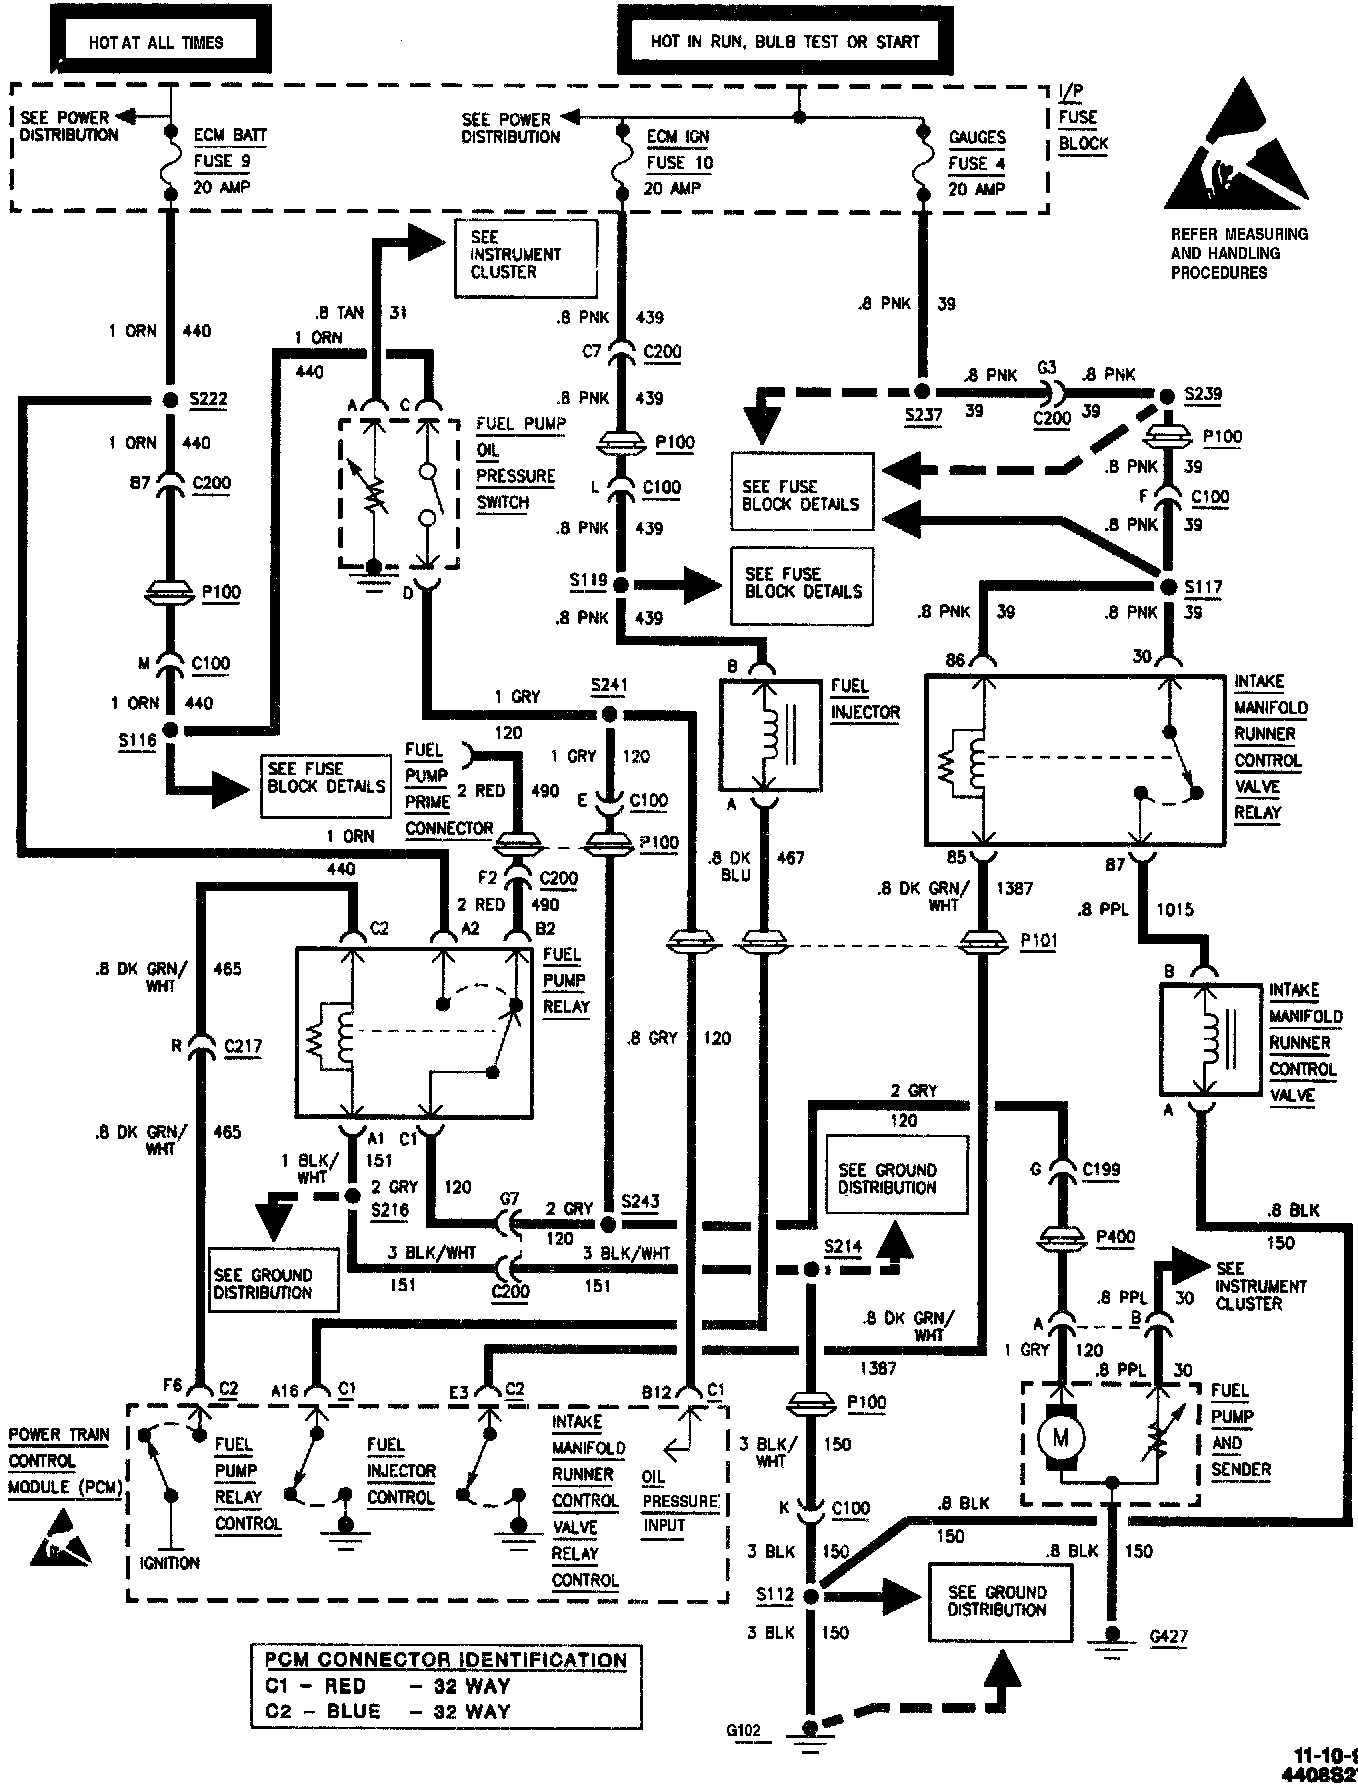 Wiring Diagrams For Mack Trucks Library Schematic Truck Fuel System Diagram In Addition Pump 96 Chevy Blazer Turn